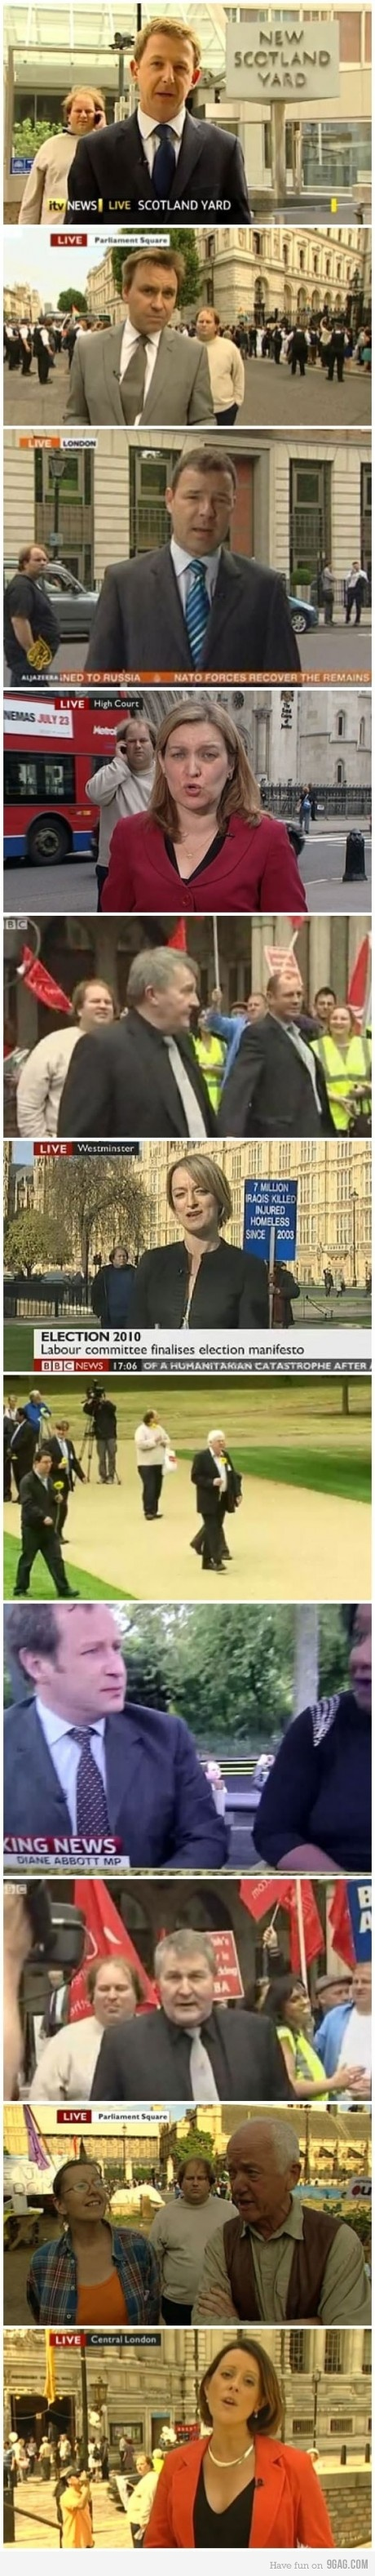 The UK's most legendary news photobomber